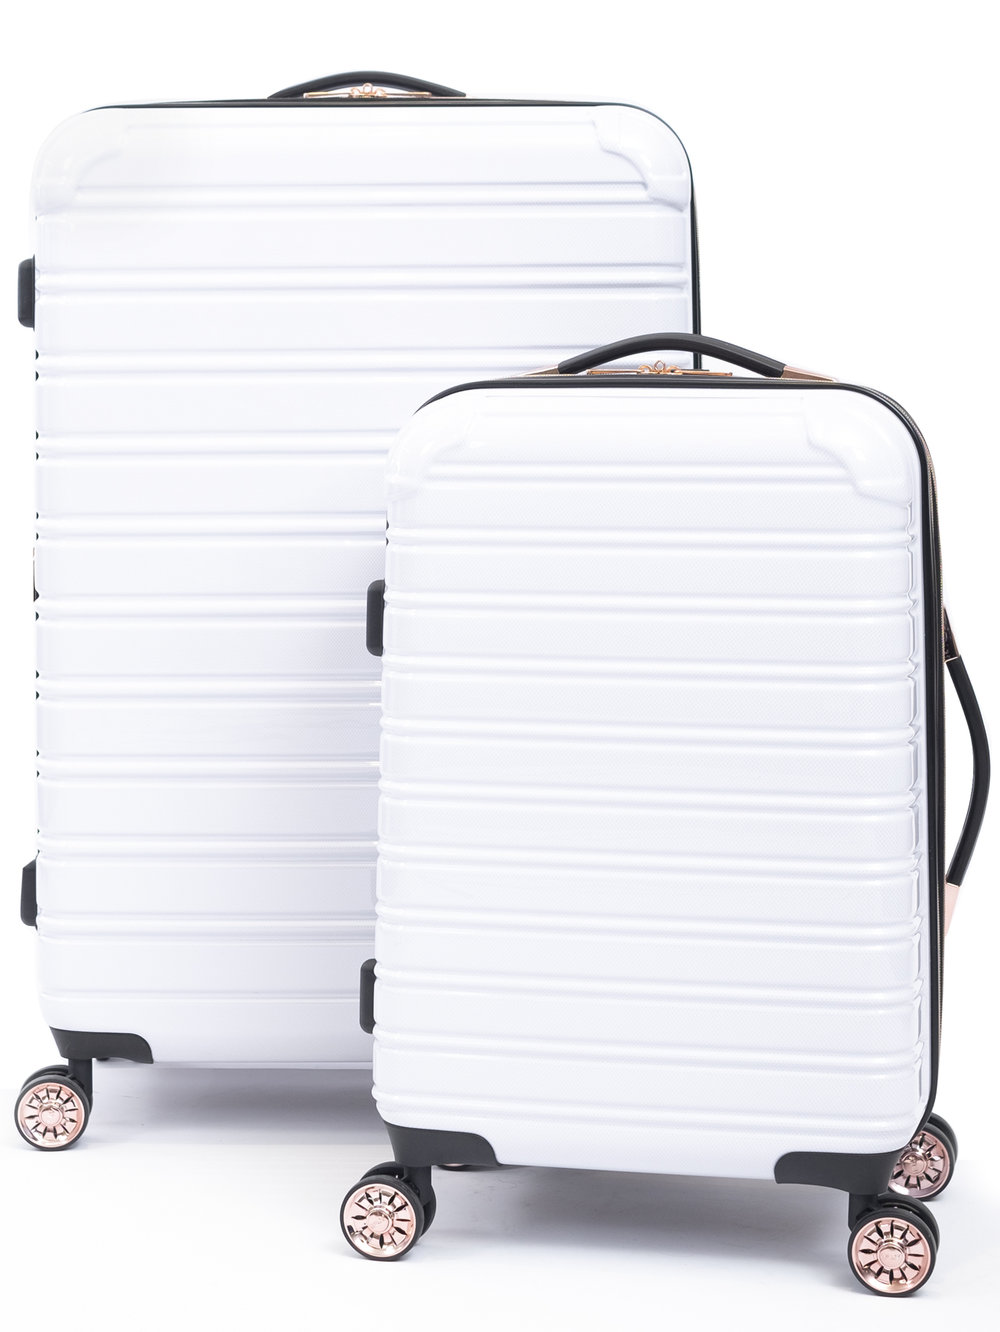 The Sweetest Lil Luggage Set - How cute are these? I LOVE our four wheeled suitcases. I   found outs at TJ Maxx but these cuties are at Walmart$120